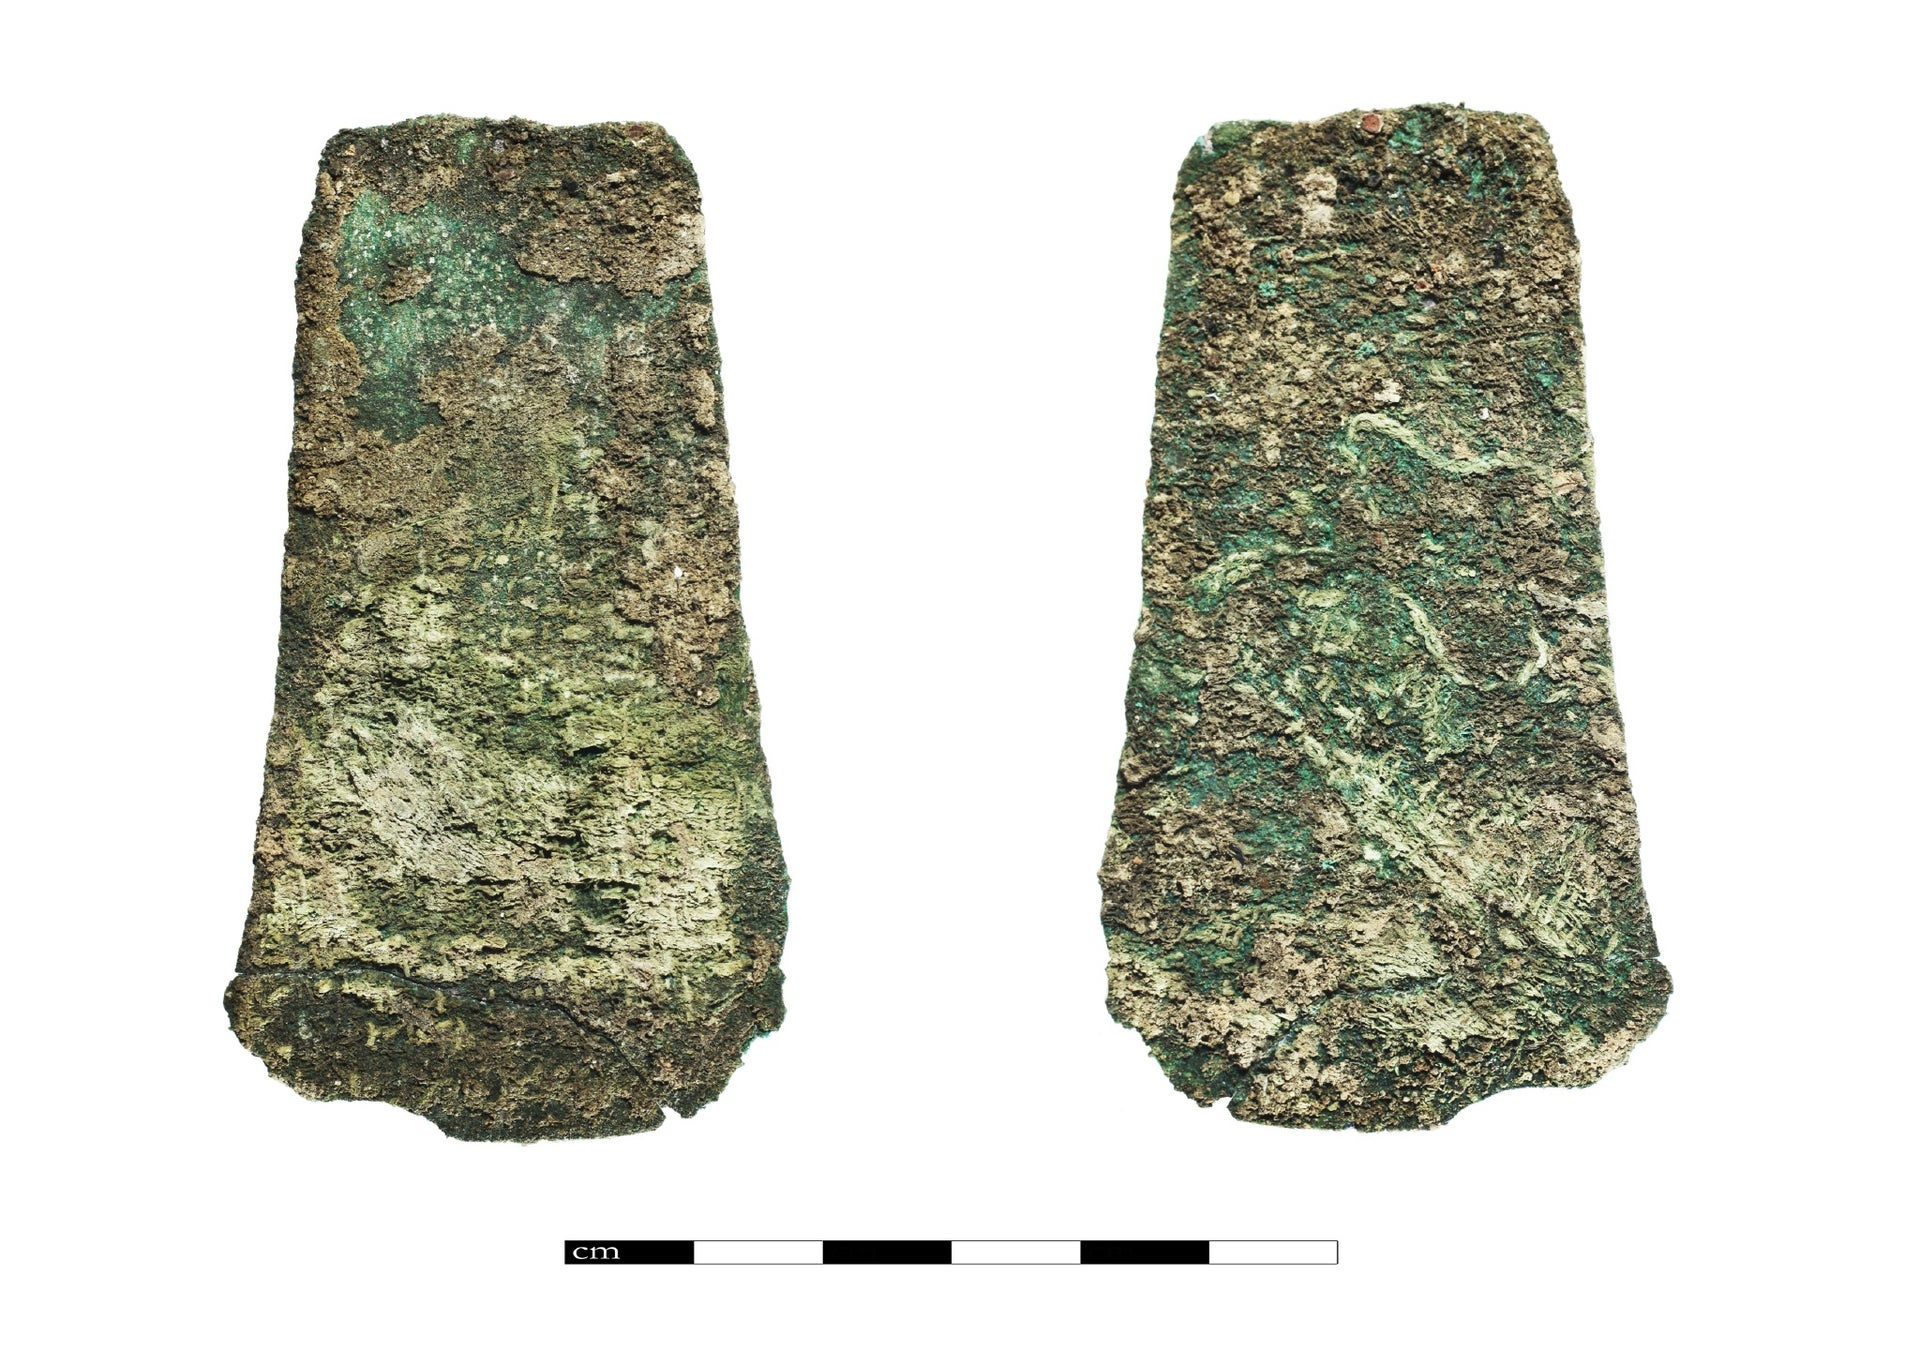 An Egyptian style razor blade found at Tel Dan (front and back).